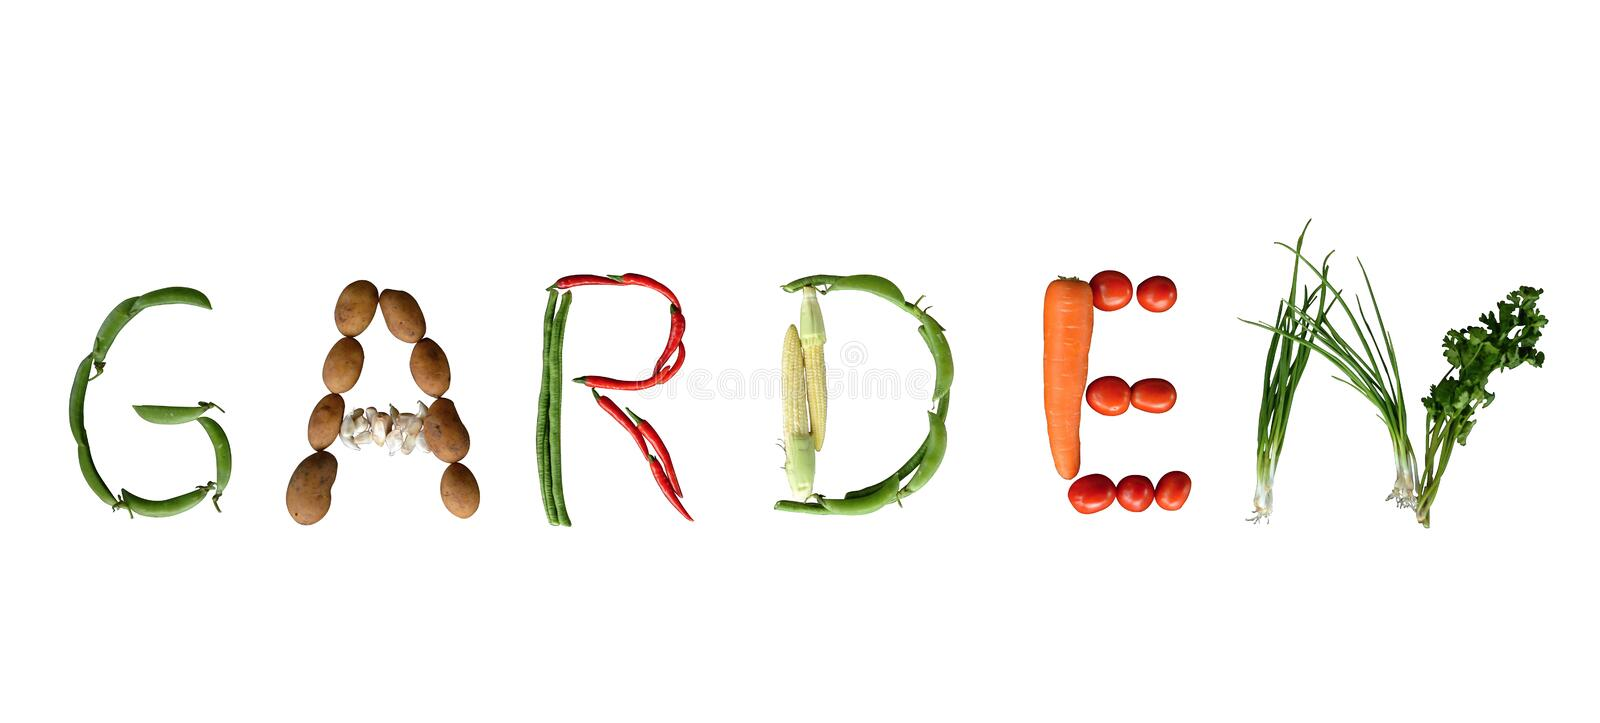 Letters Garden: Vegetable Writing GARDEN Stock Image. Image Of Diet